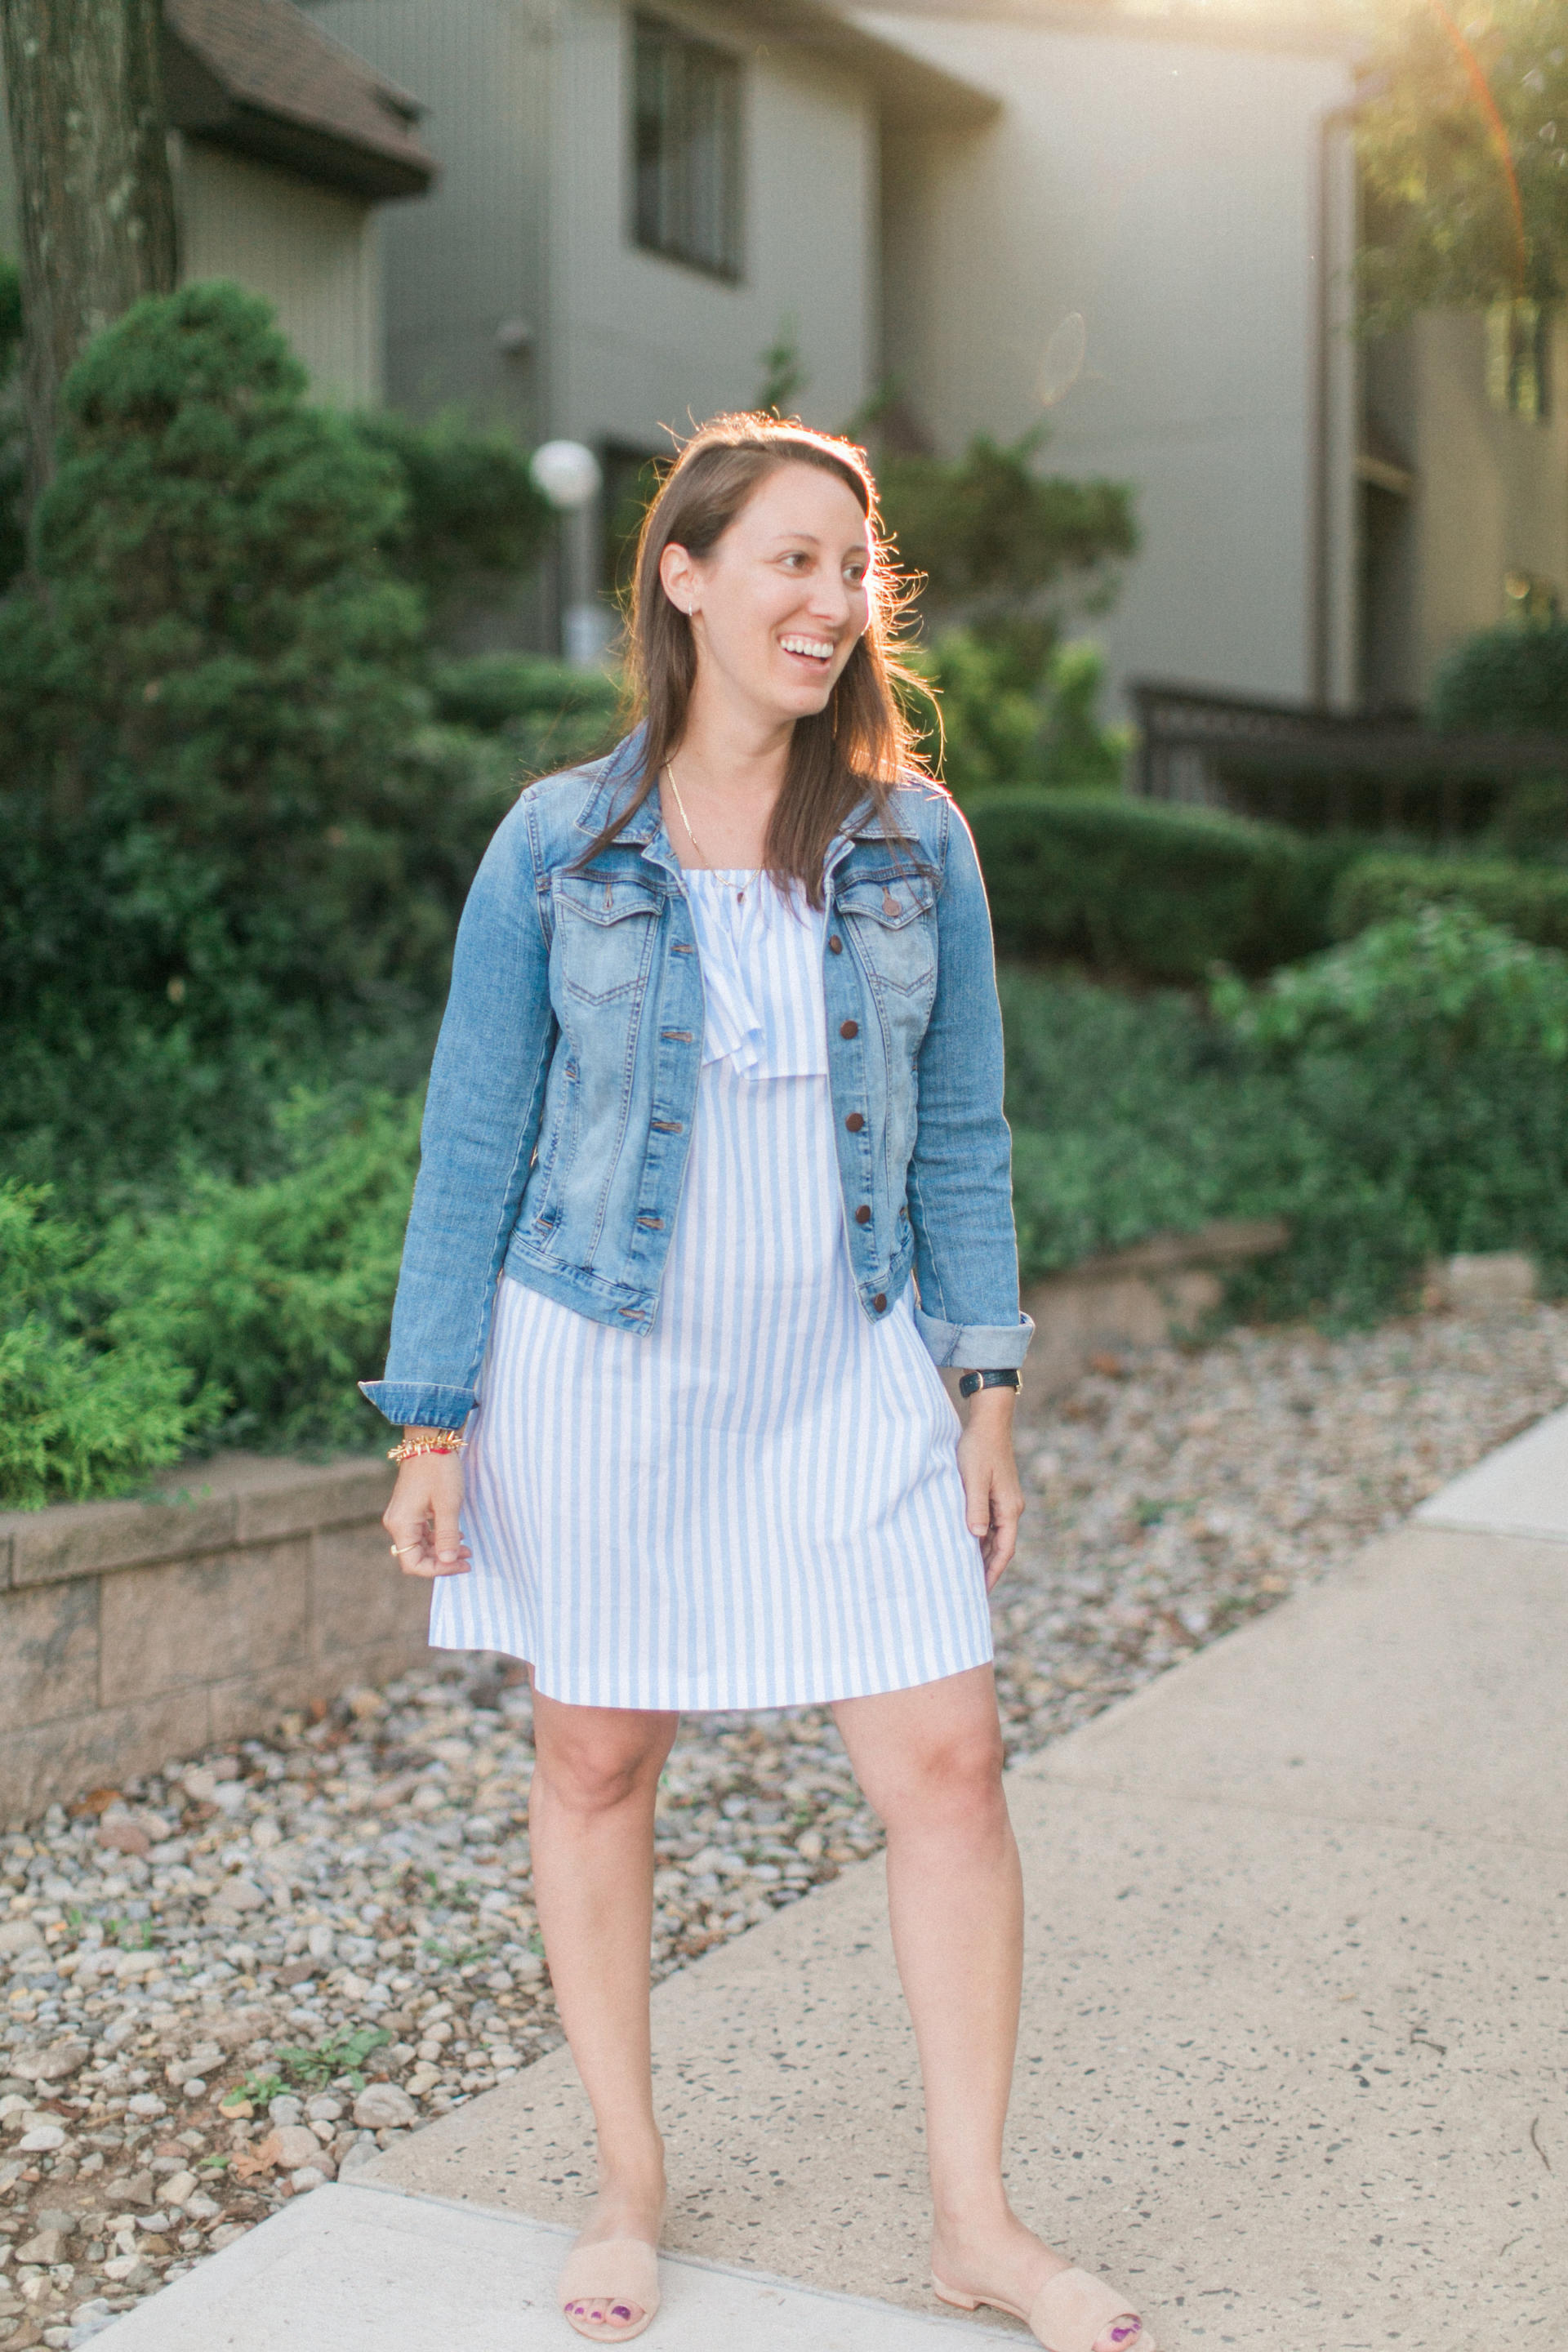 STYLE: Signet and Stripes